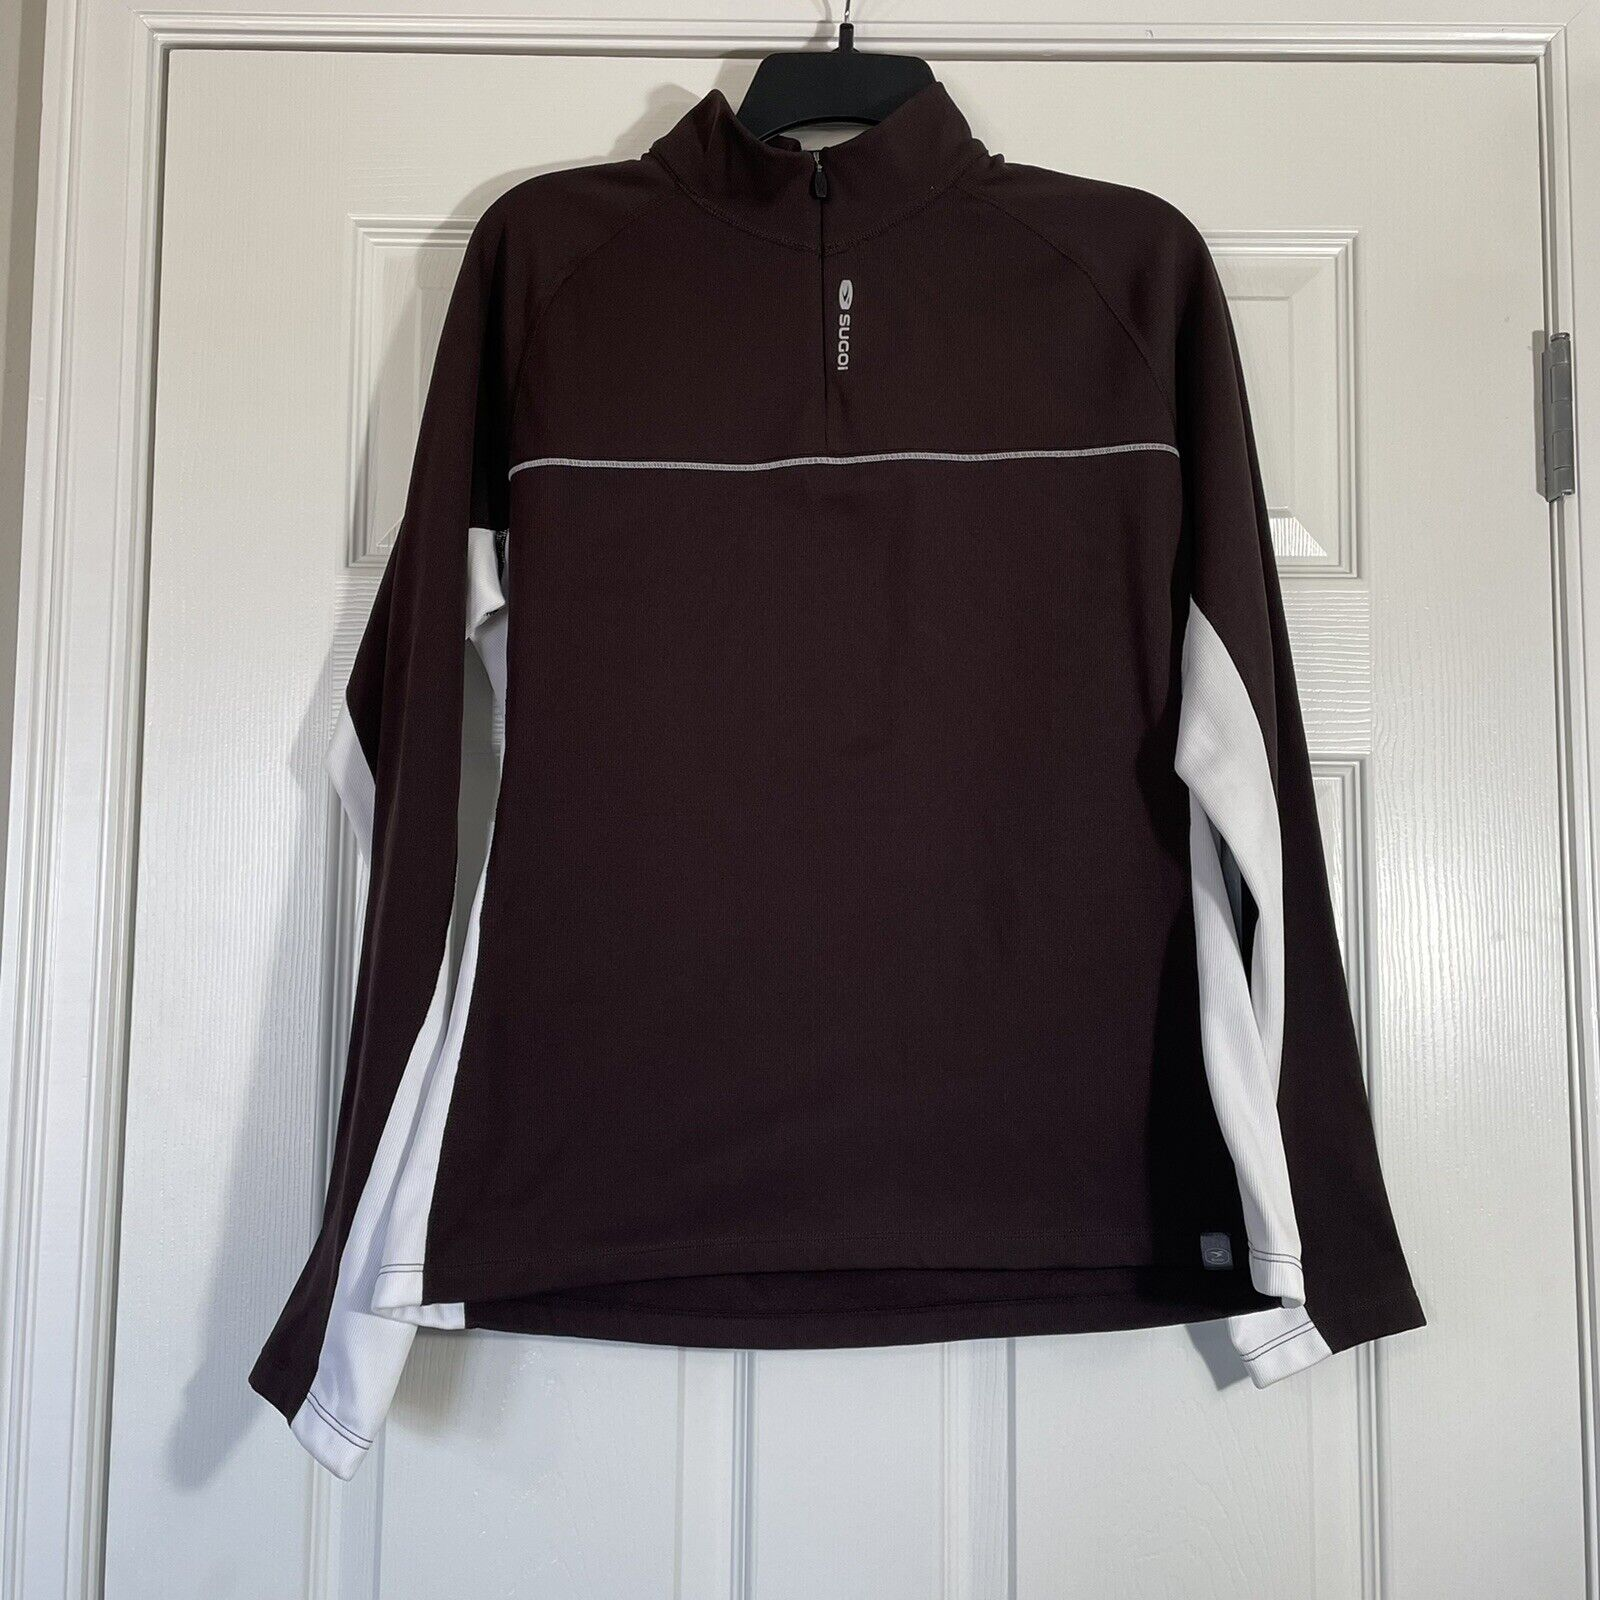 Sugoi XL Long Sleeve Pullover Cycling Top Fleece Lined